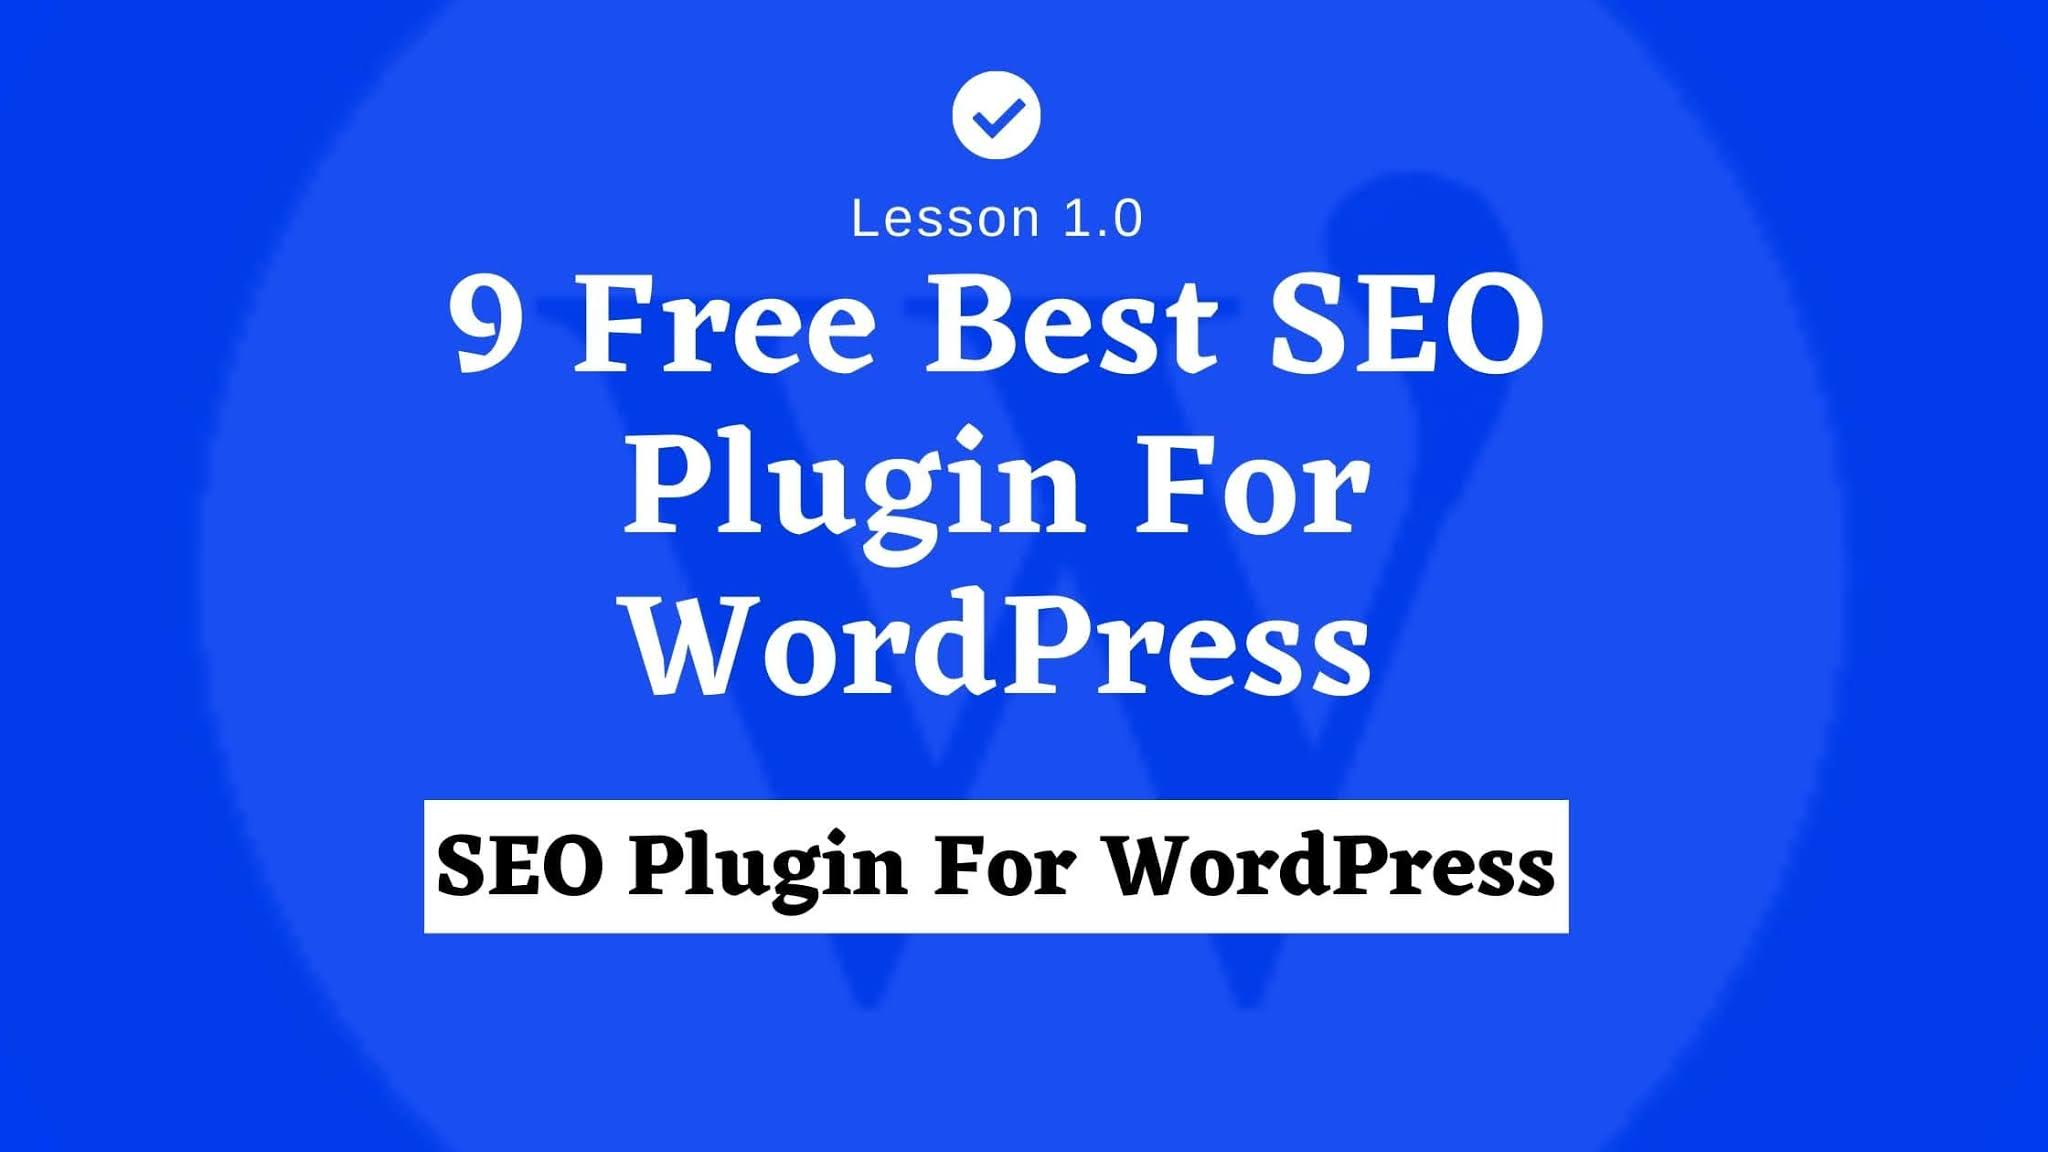 9 Free Best SEO Plugin For WordPress